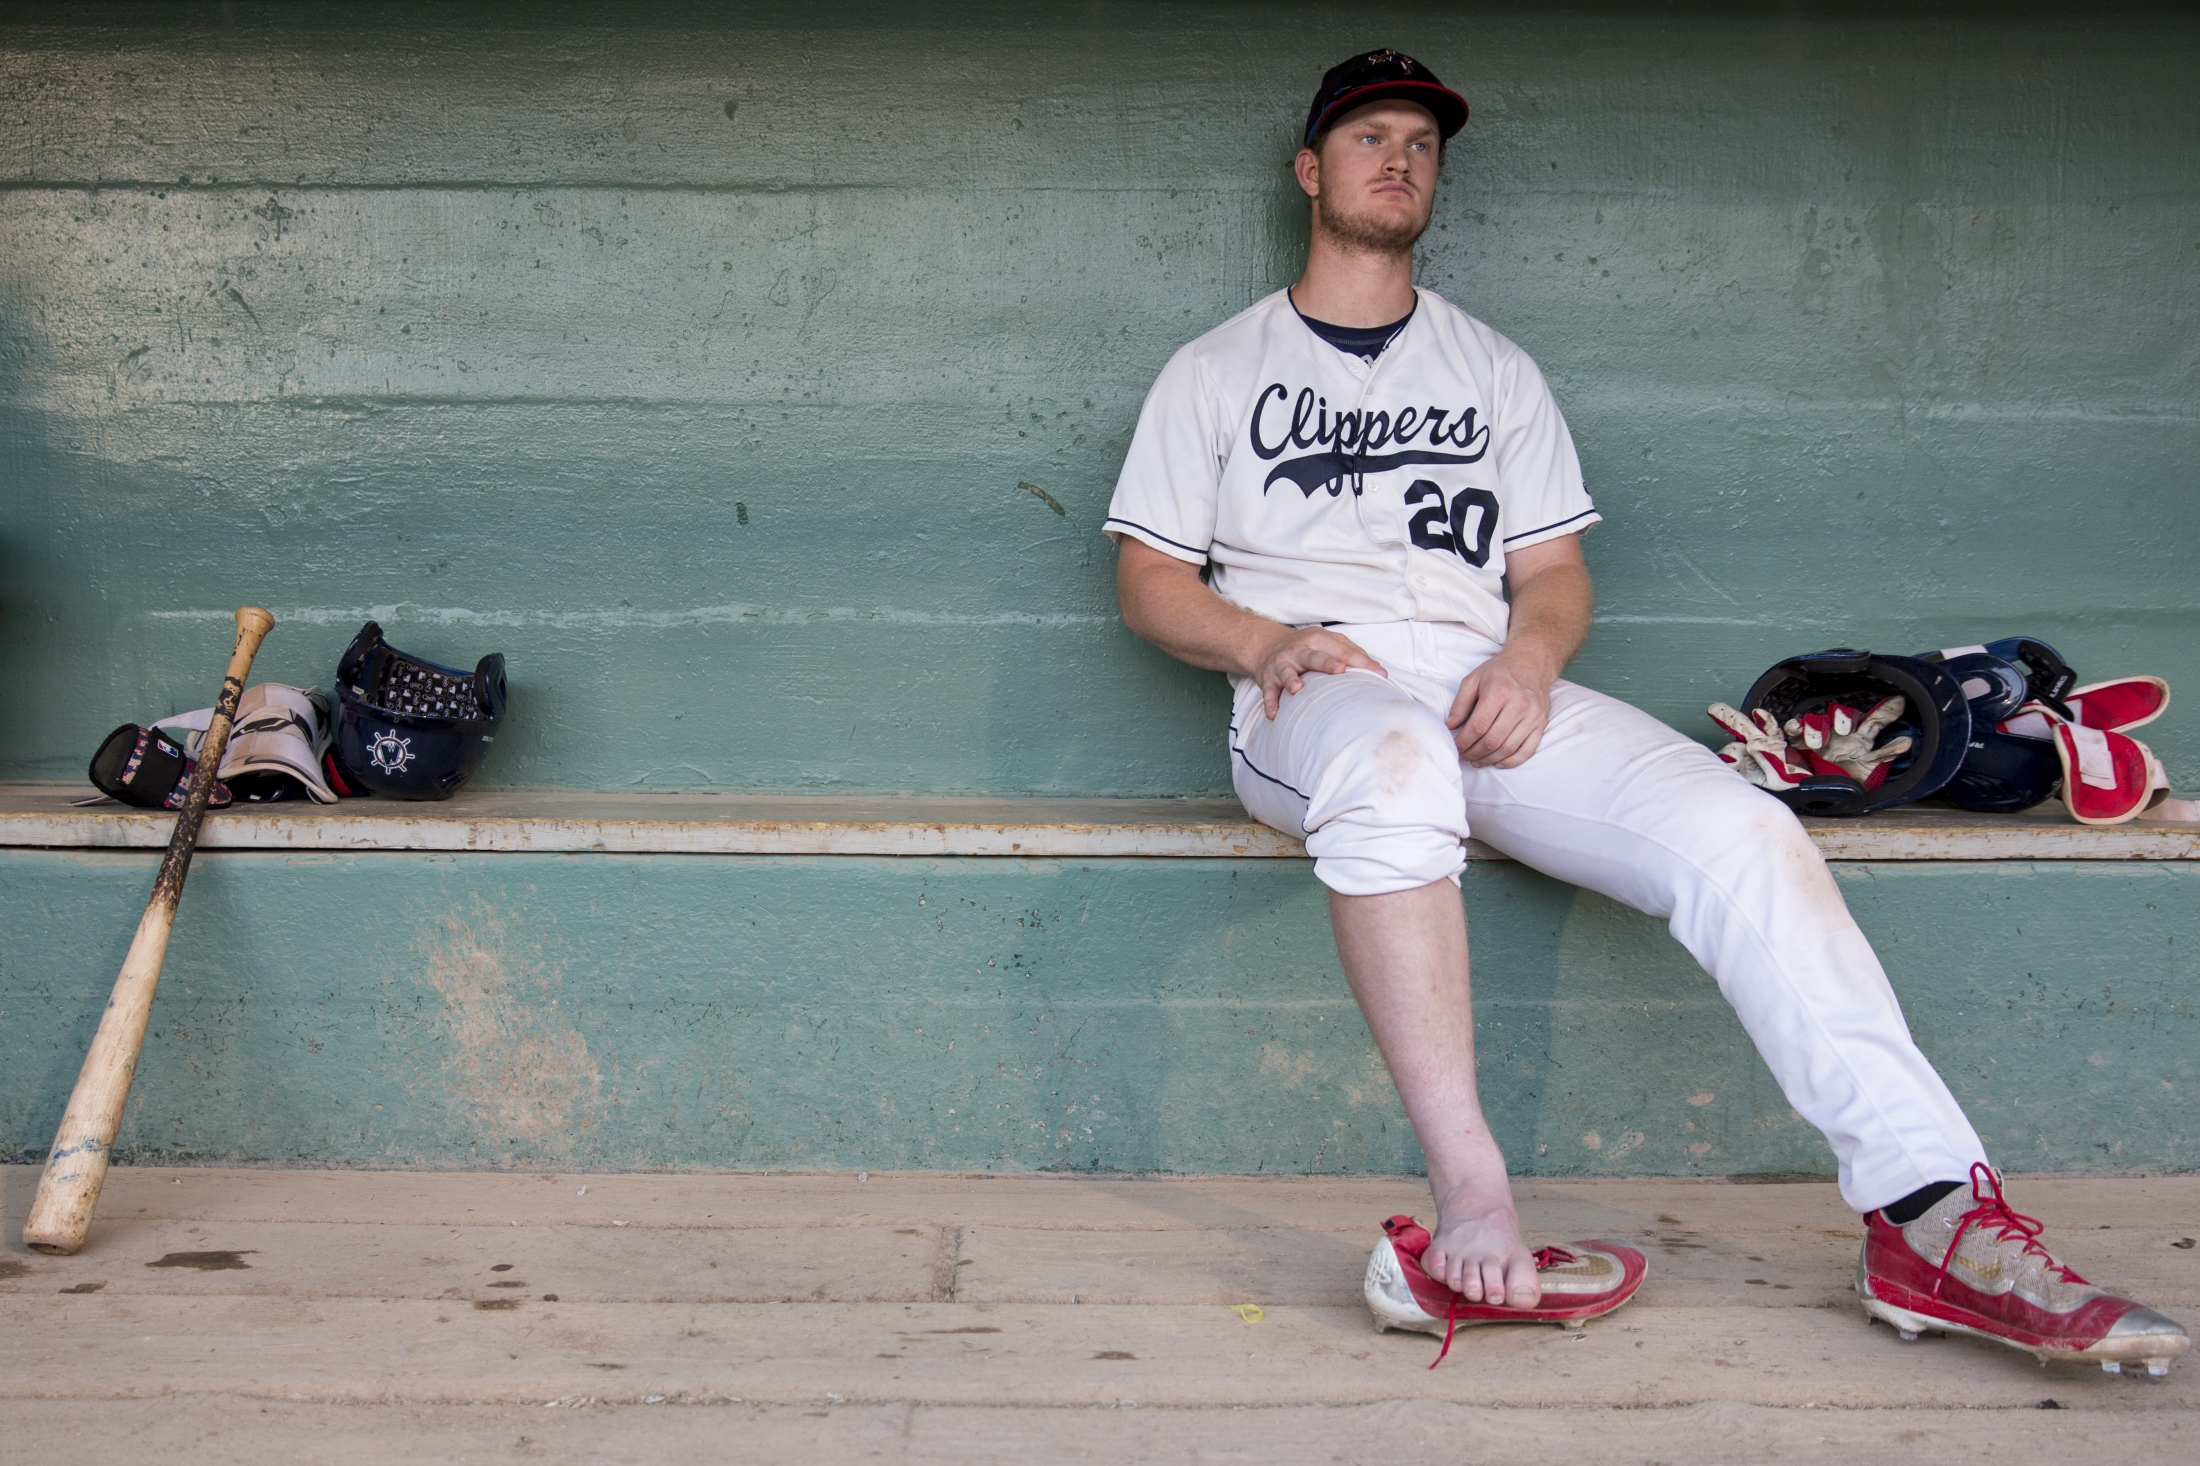 Muskegon Clippers Peter Zimmermann (20) rests in the dugout after an ankle injury on the right foot during a game against Grand River Loggers at Marsh Field in Muskegon on July 6, 2017. Zimmermann said he was disappointed especially because his family traveled a long way from Missouri to watch the game. Loggers defeated Clippers 6-2.